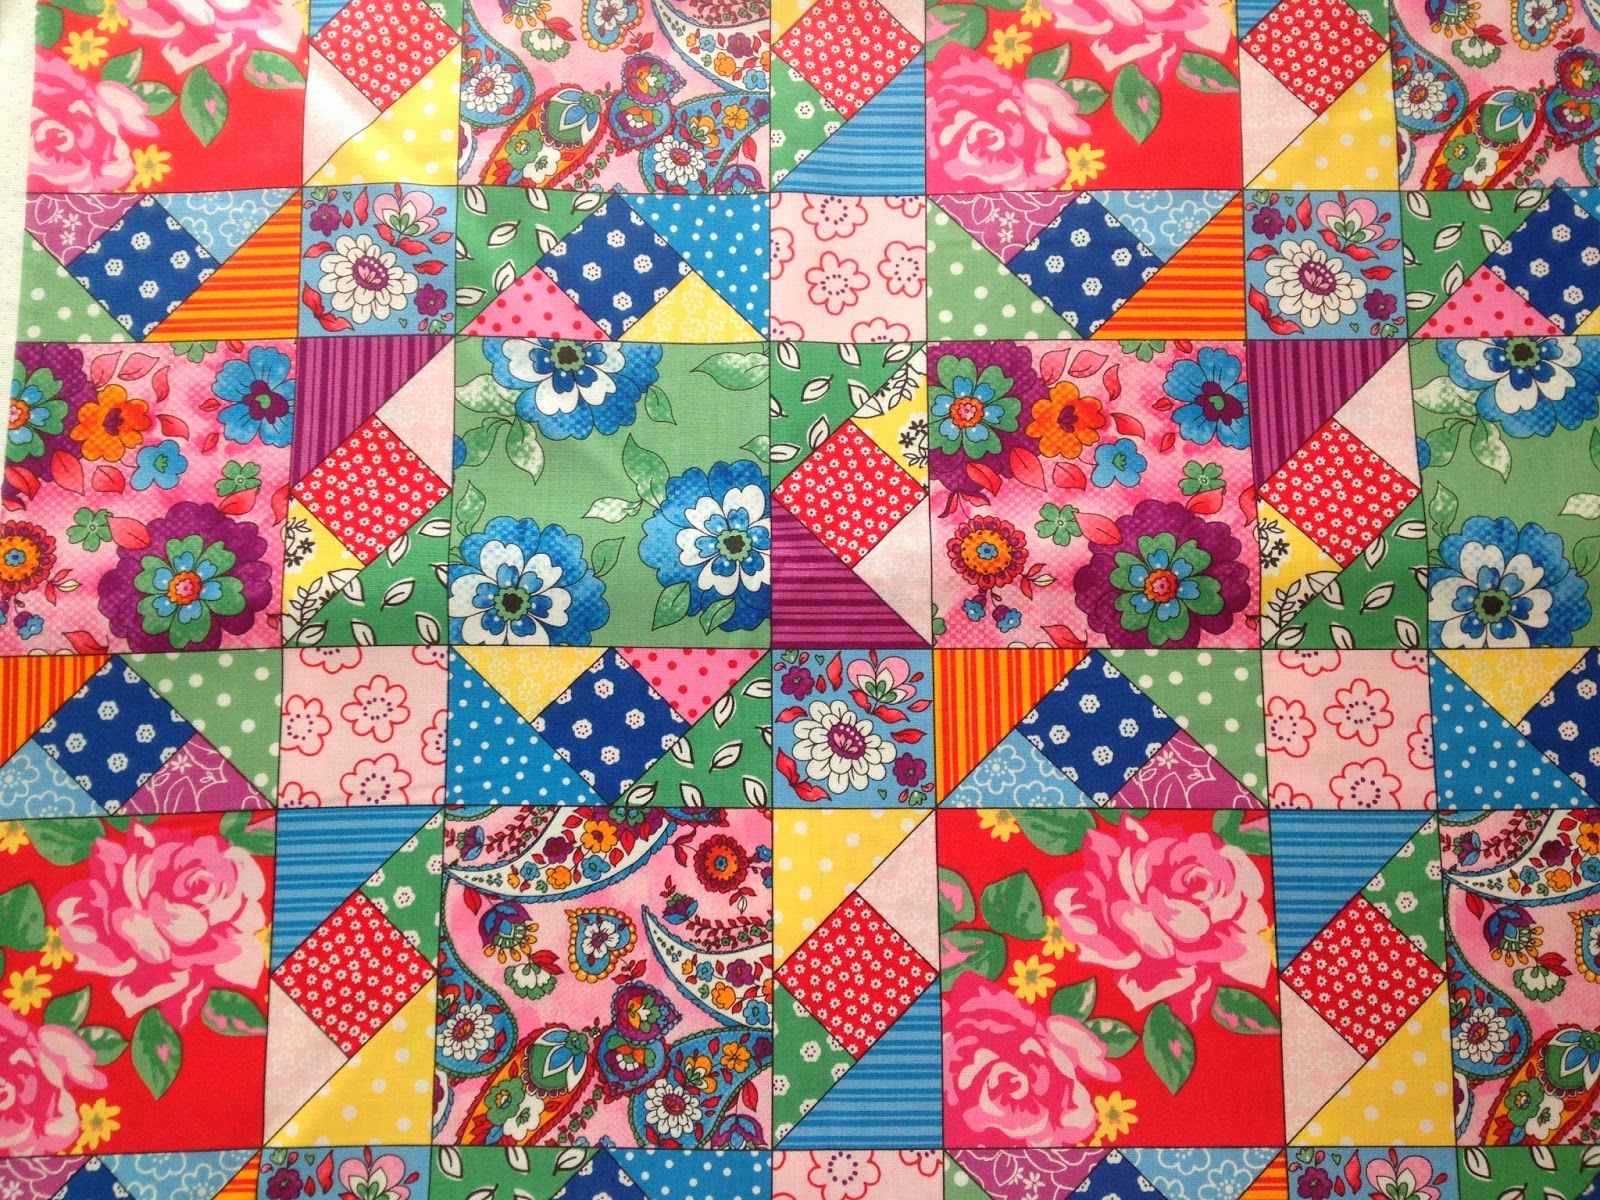 Bee Fabric Quilting Quilting Bee Patchwork Fabric